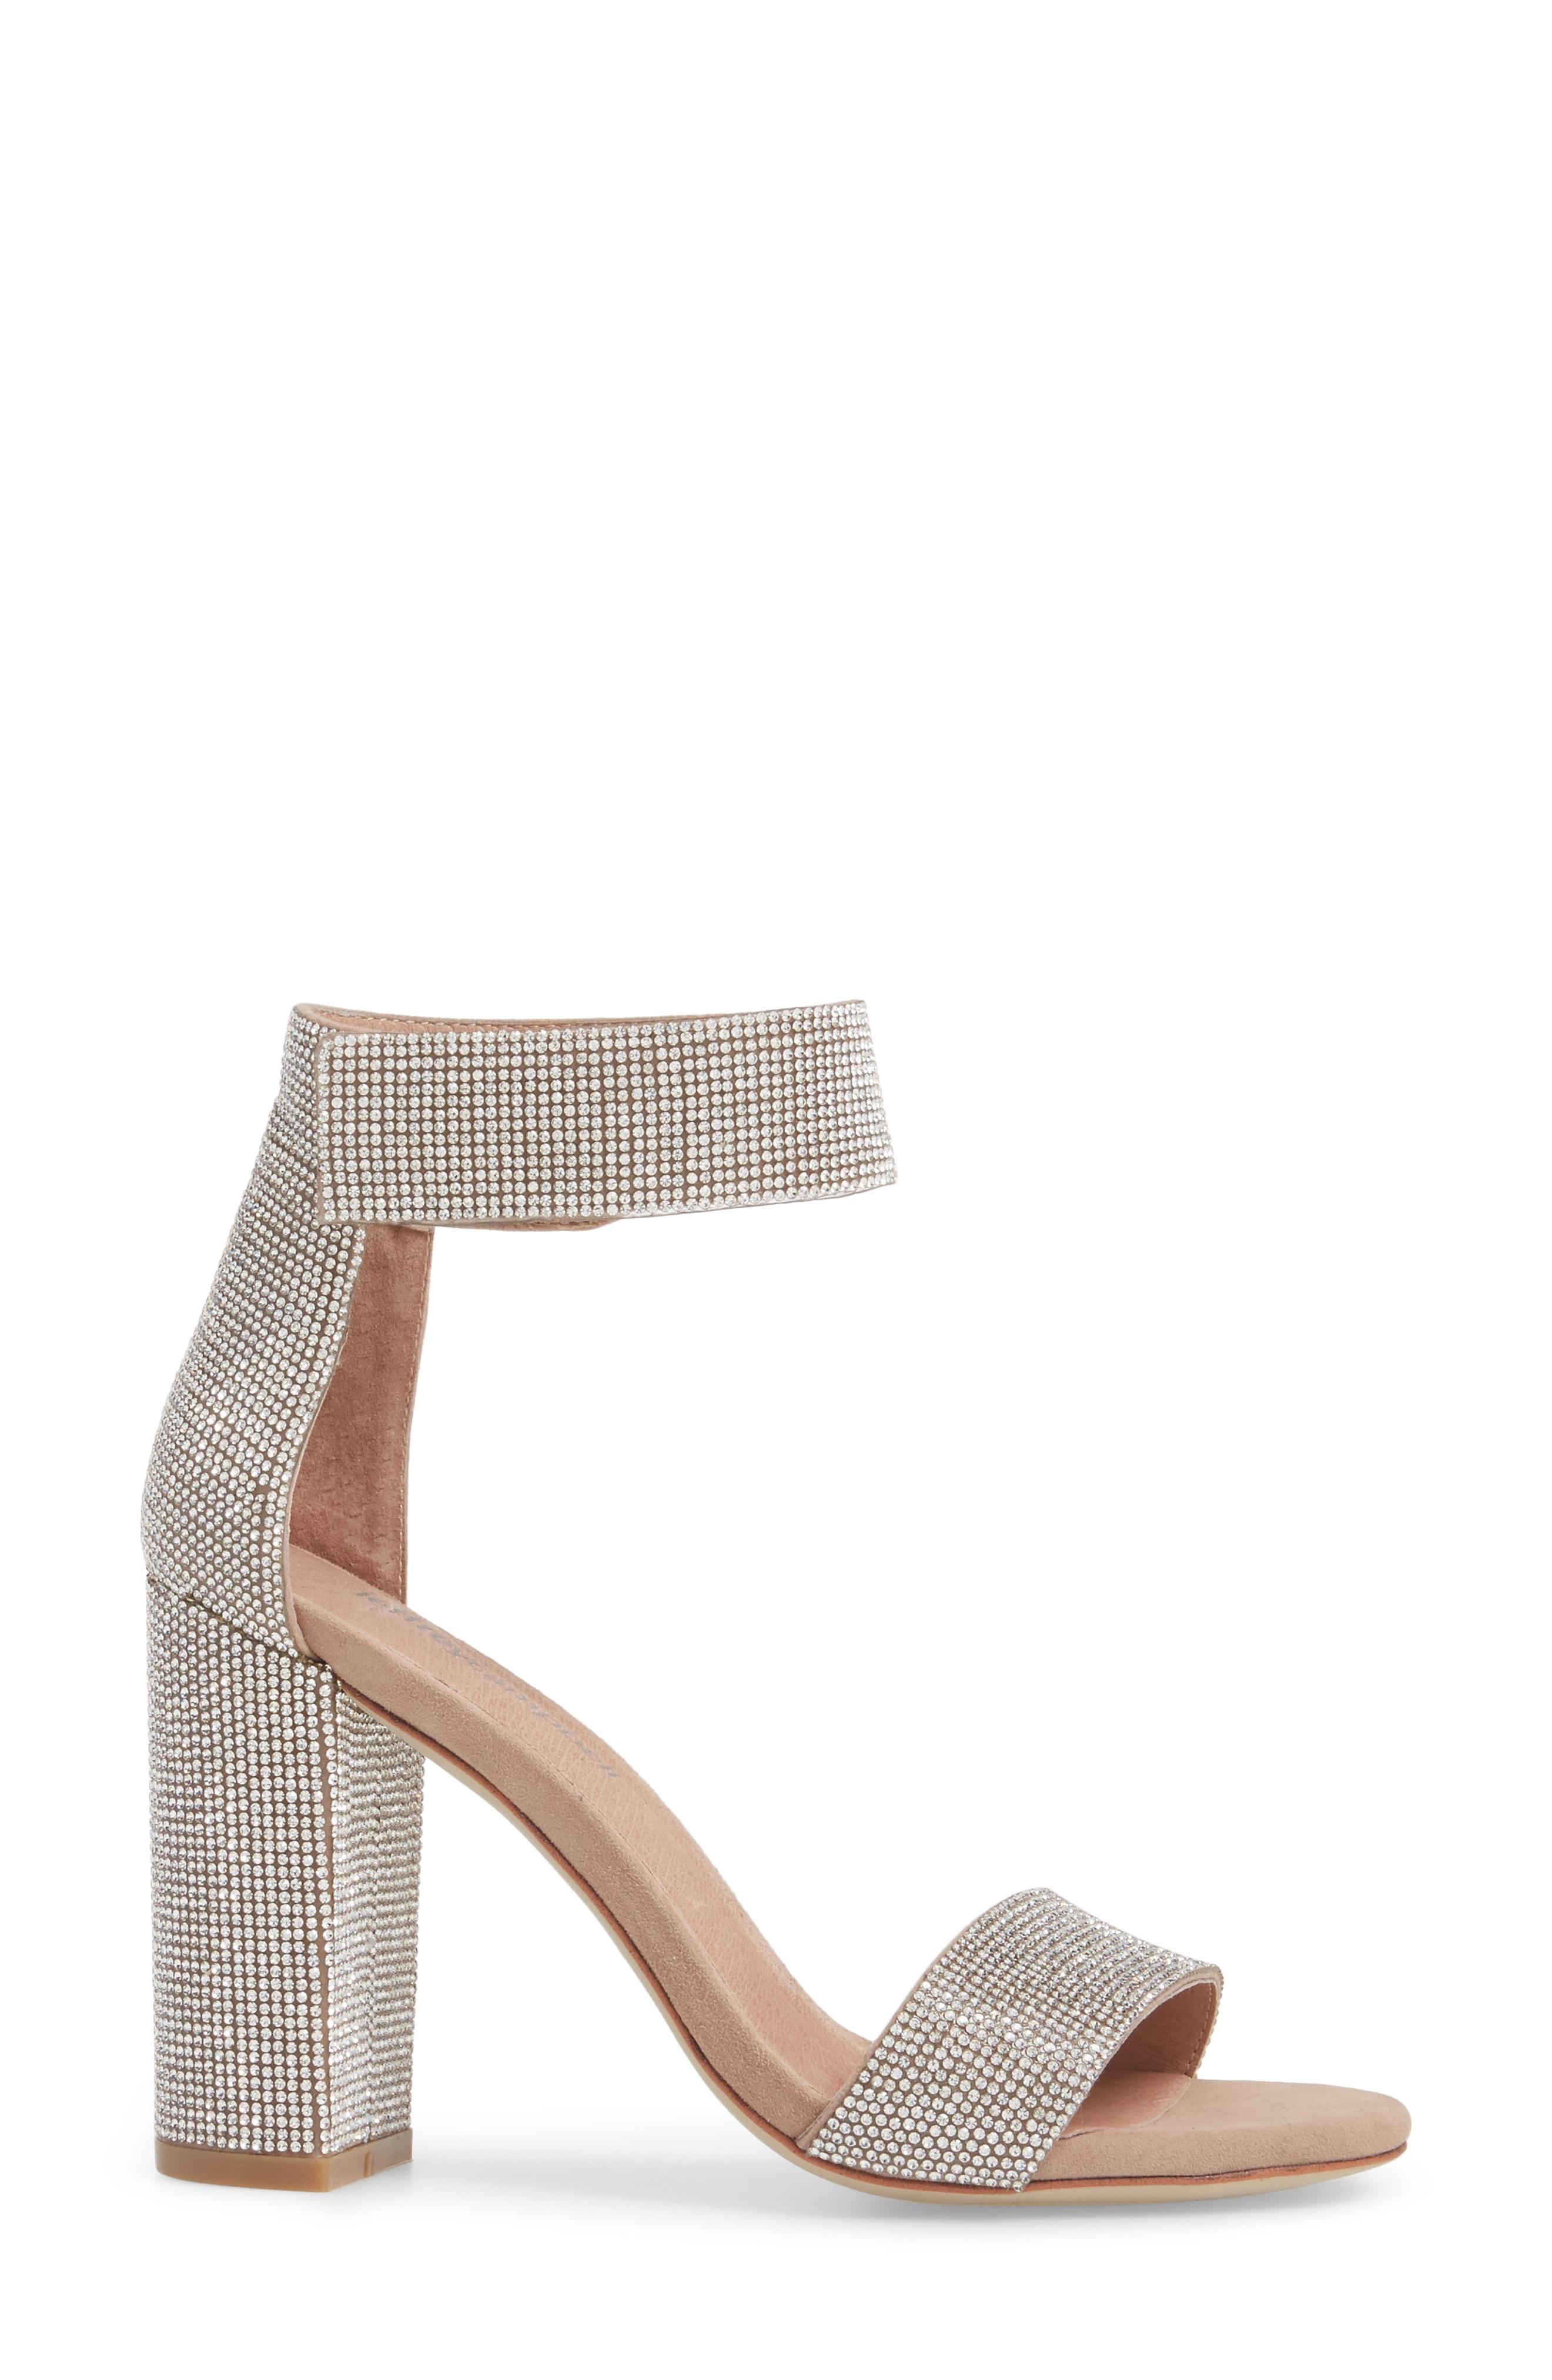 7963f468fbd Jeffrey Campbell Lindsay Sandal In Nude Suede Champagne